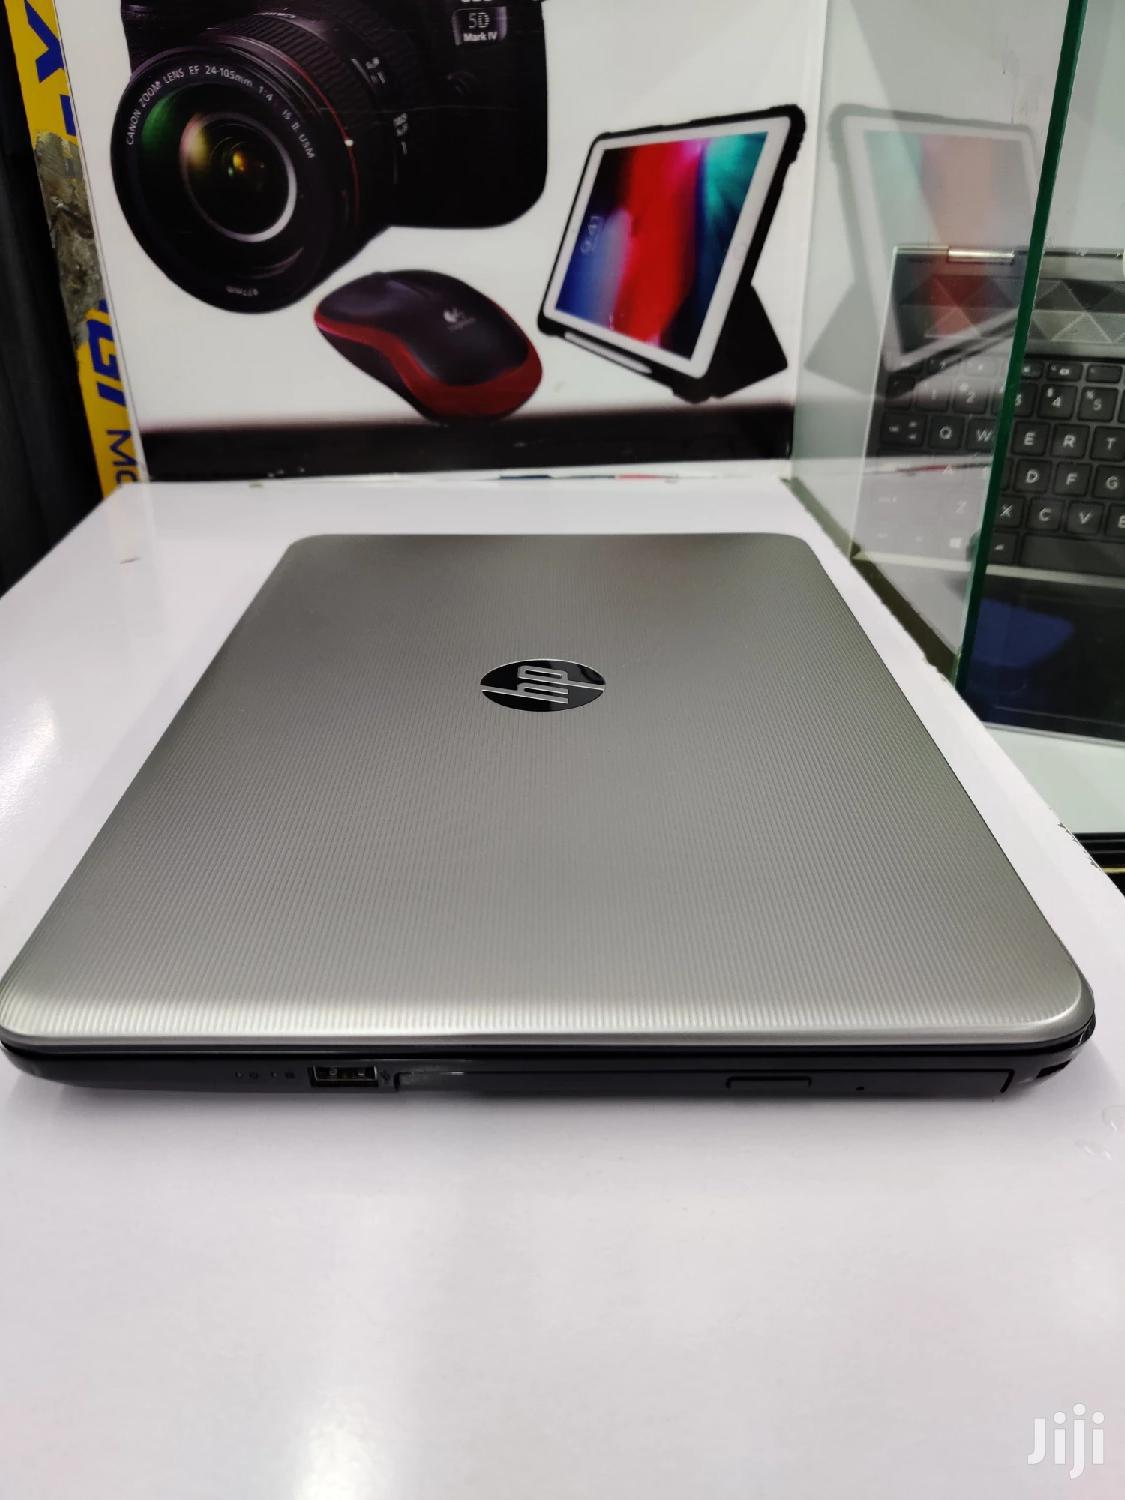 Laptop HP Pavilion 14 4GB Intel Core I3 HDD 500GB | Laptops & Computers for sale in Nairobi Central, Nairobi, Kenya